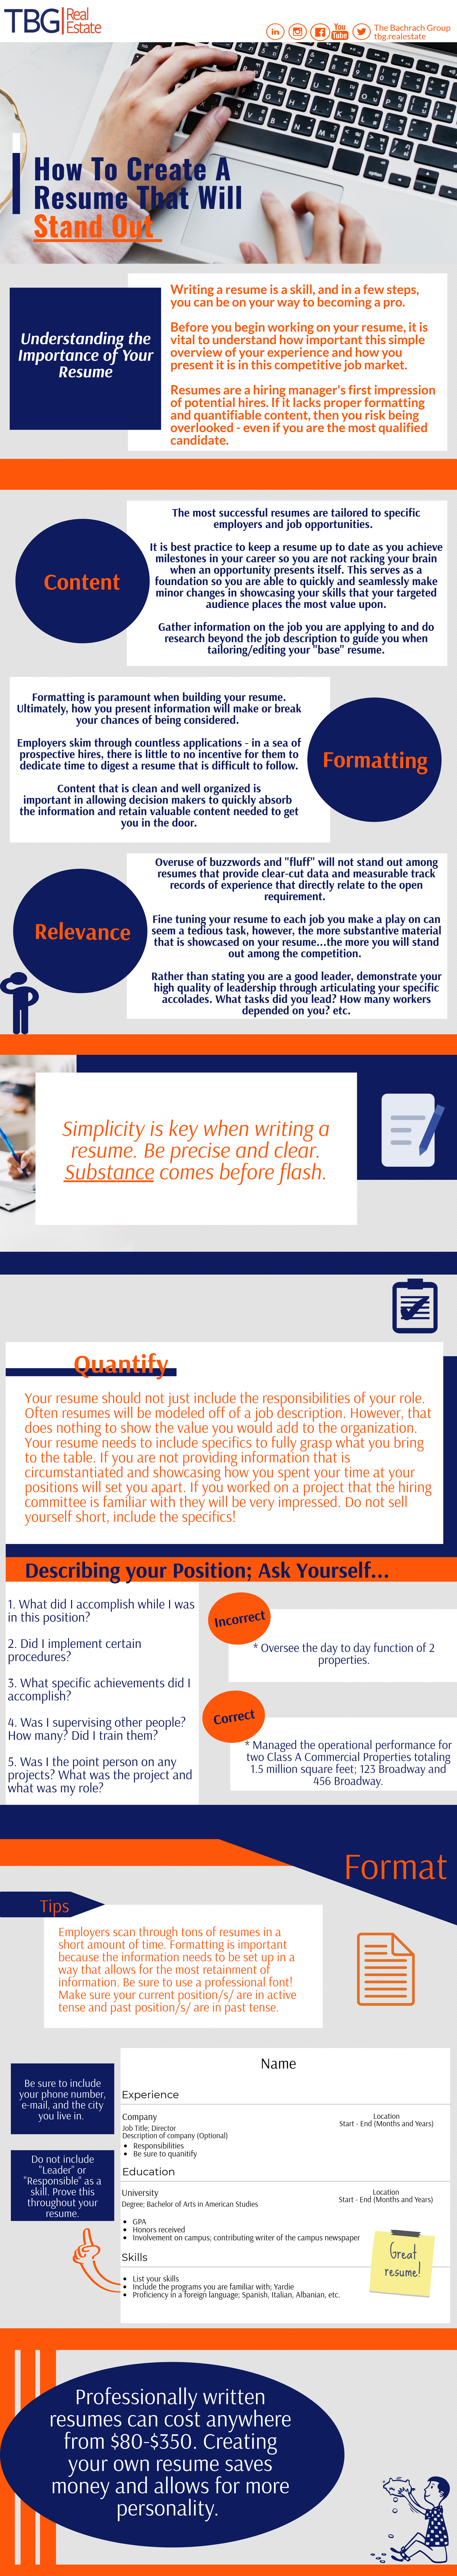 Resume Infographic Picture Format.png